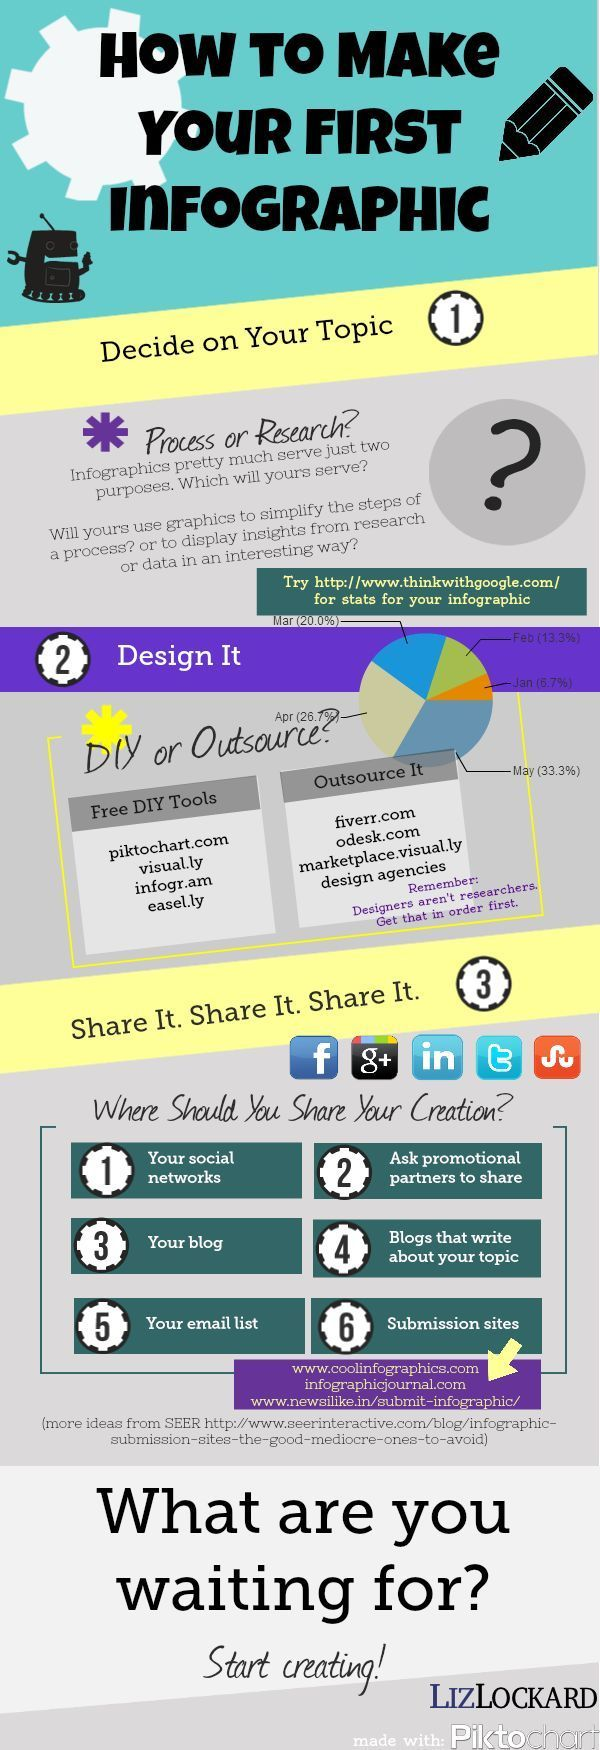 How to create your first infographic.